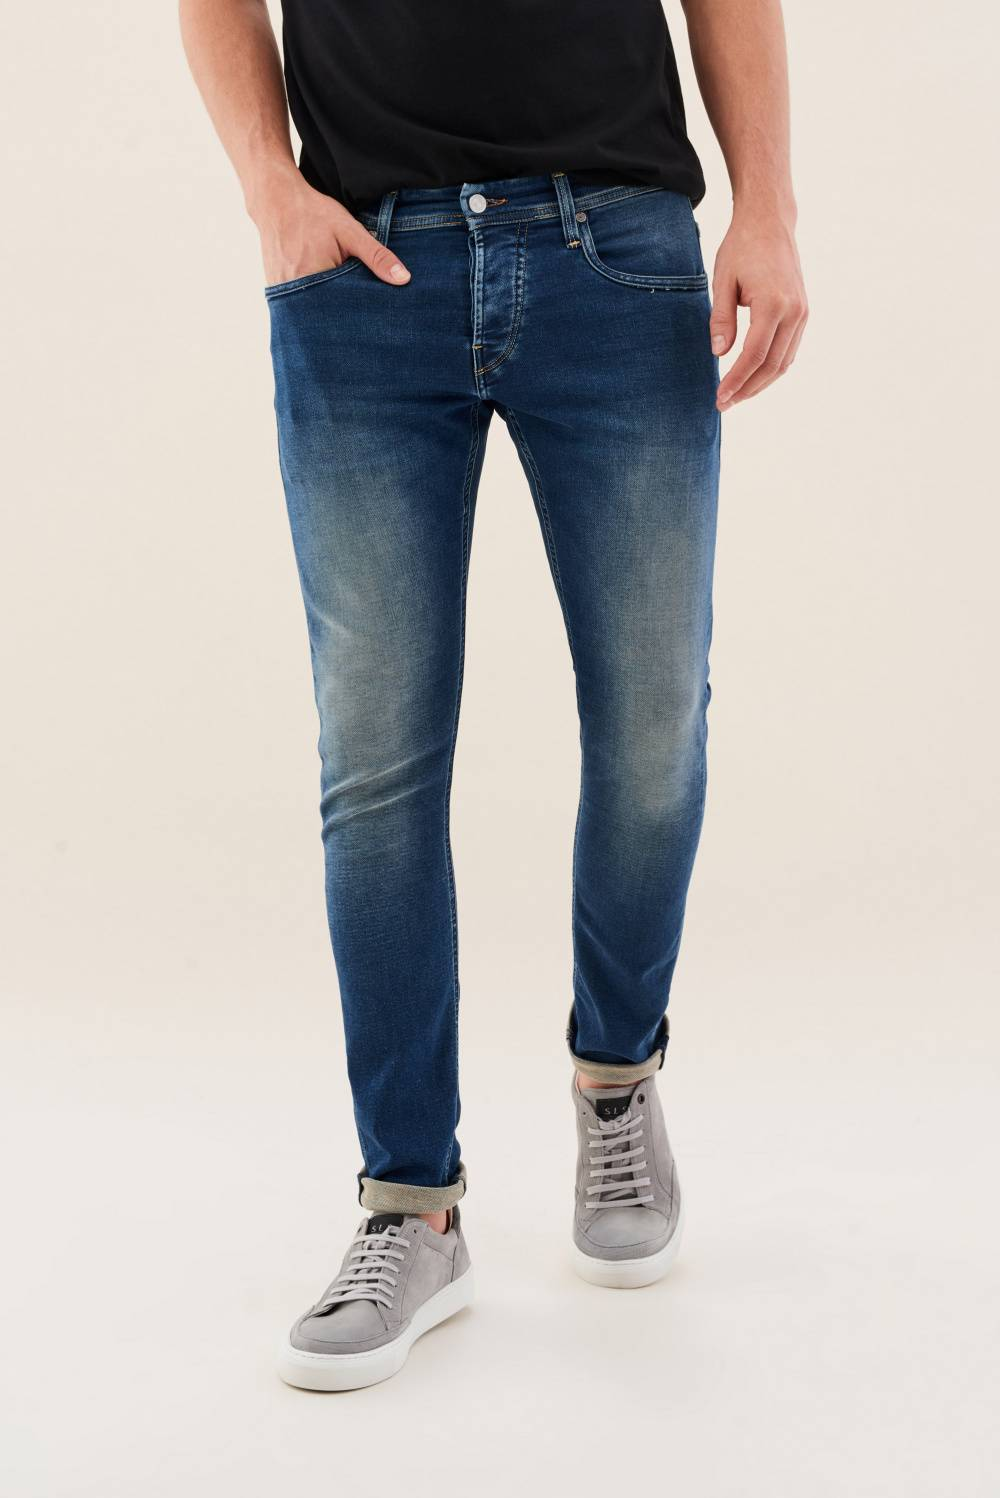 Jogger Clash jeans in overdye wash - Salsa